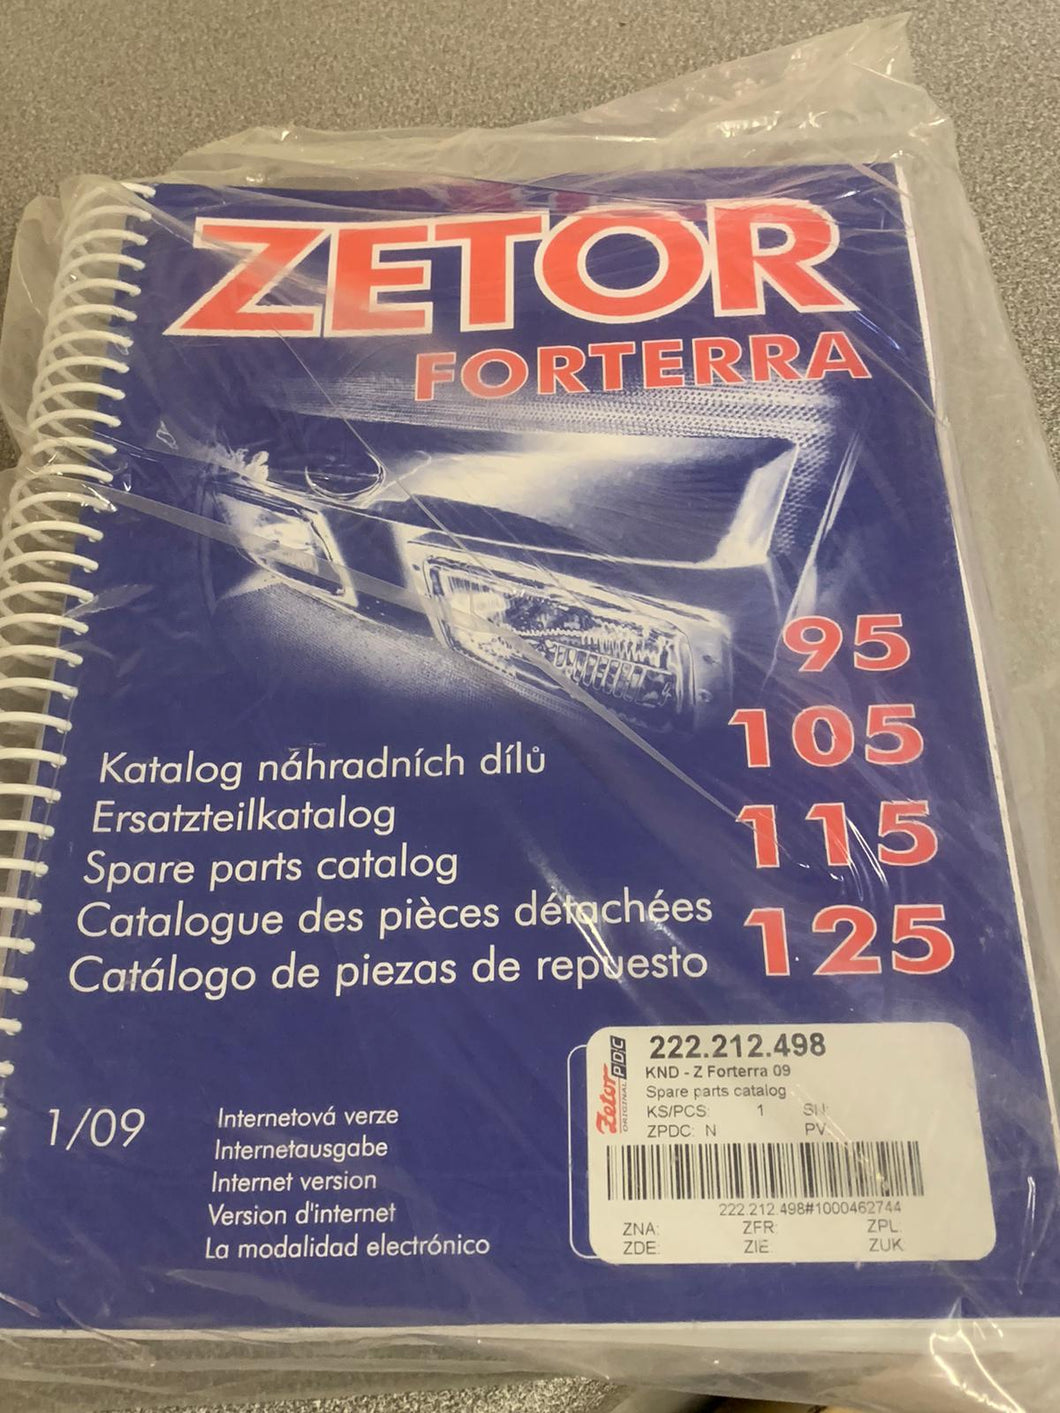 Spare Parts Manual for Zetor Forterra 95, 105, 115 and 125.